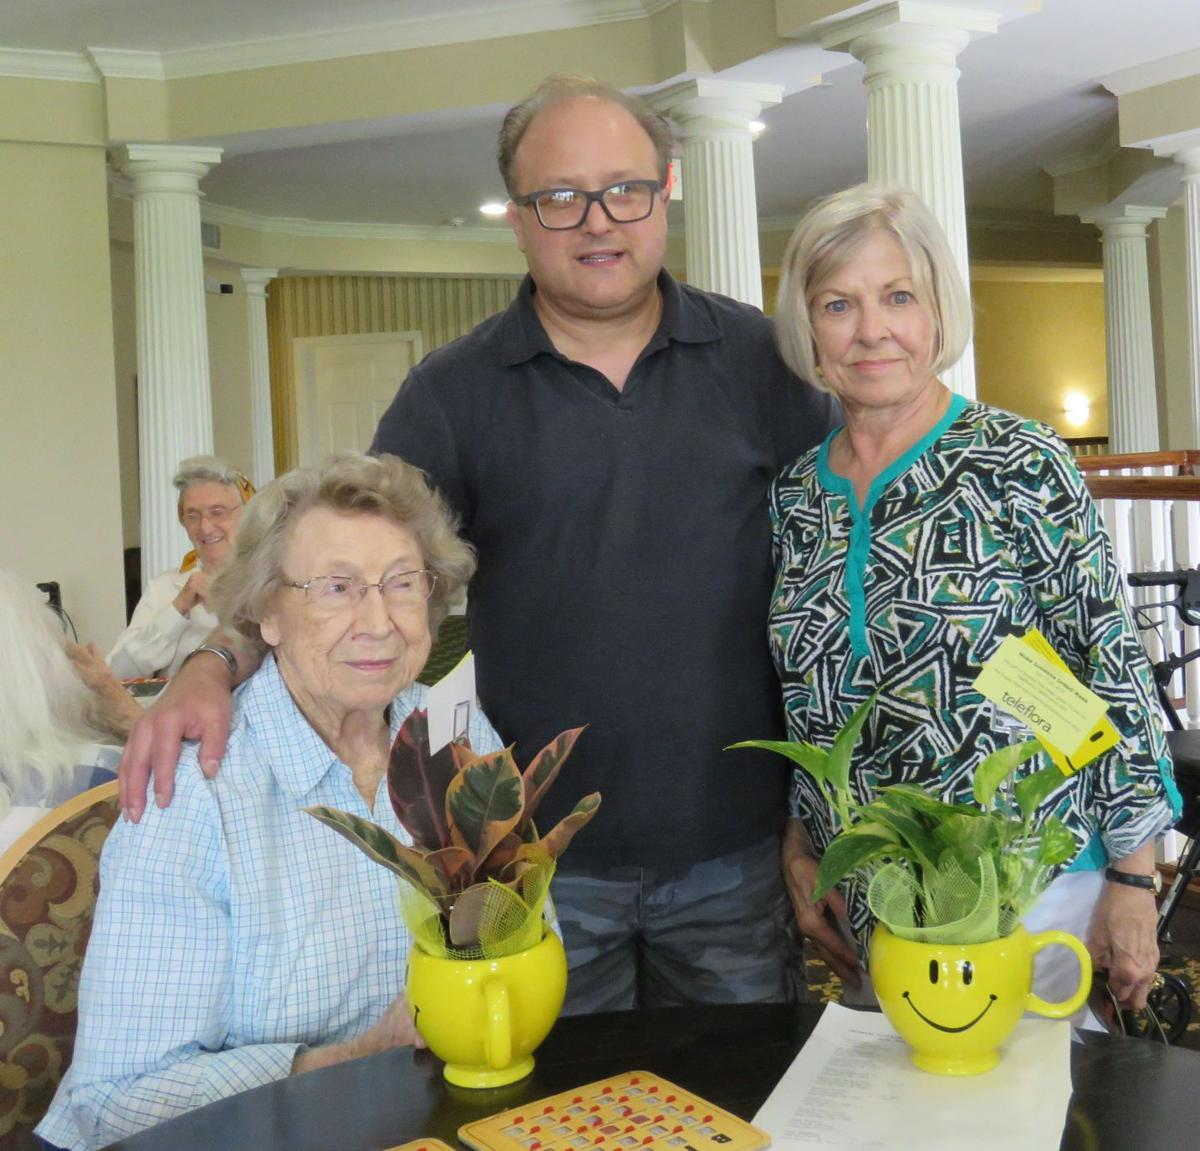 First Prebyterian Church Neal And Jeans Flowers Bring Smiles To